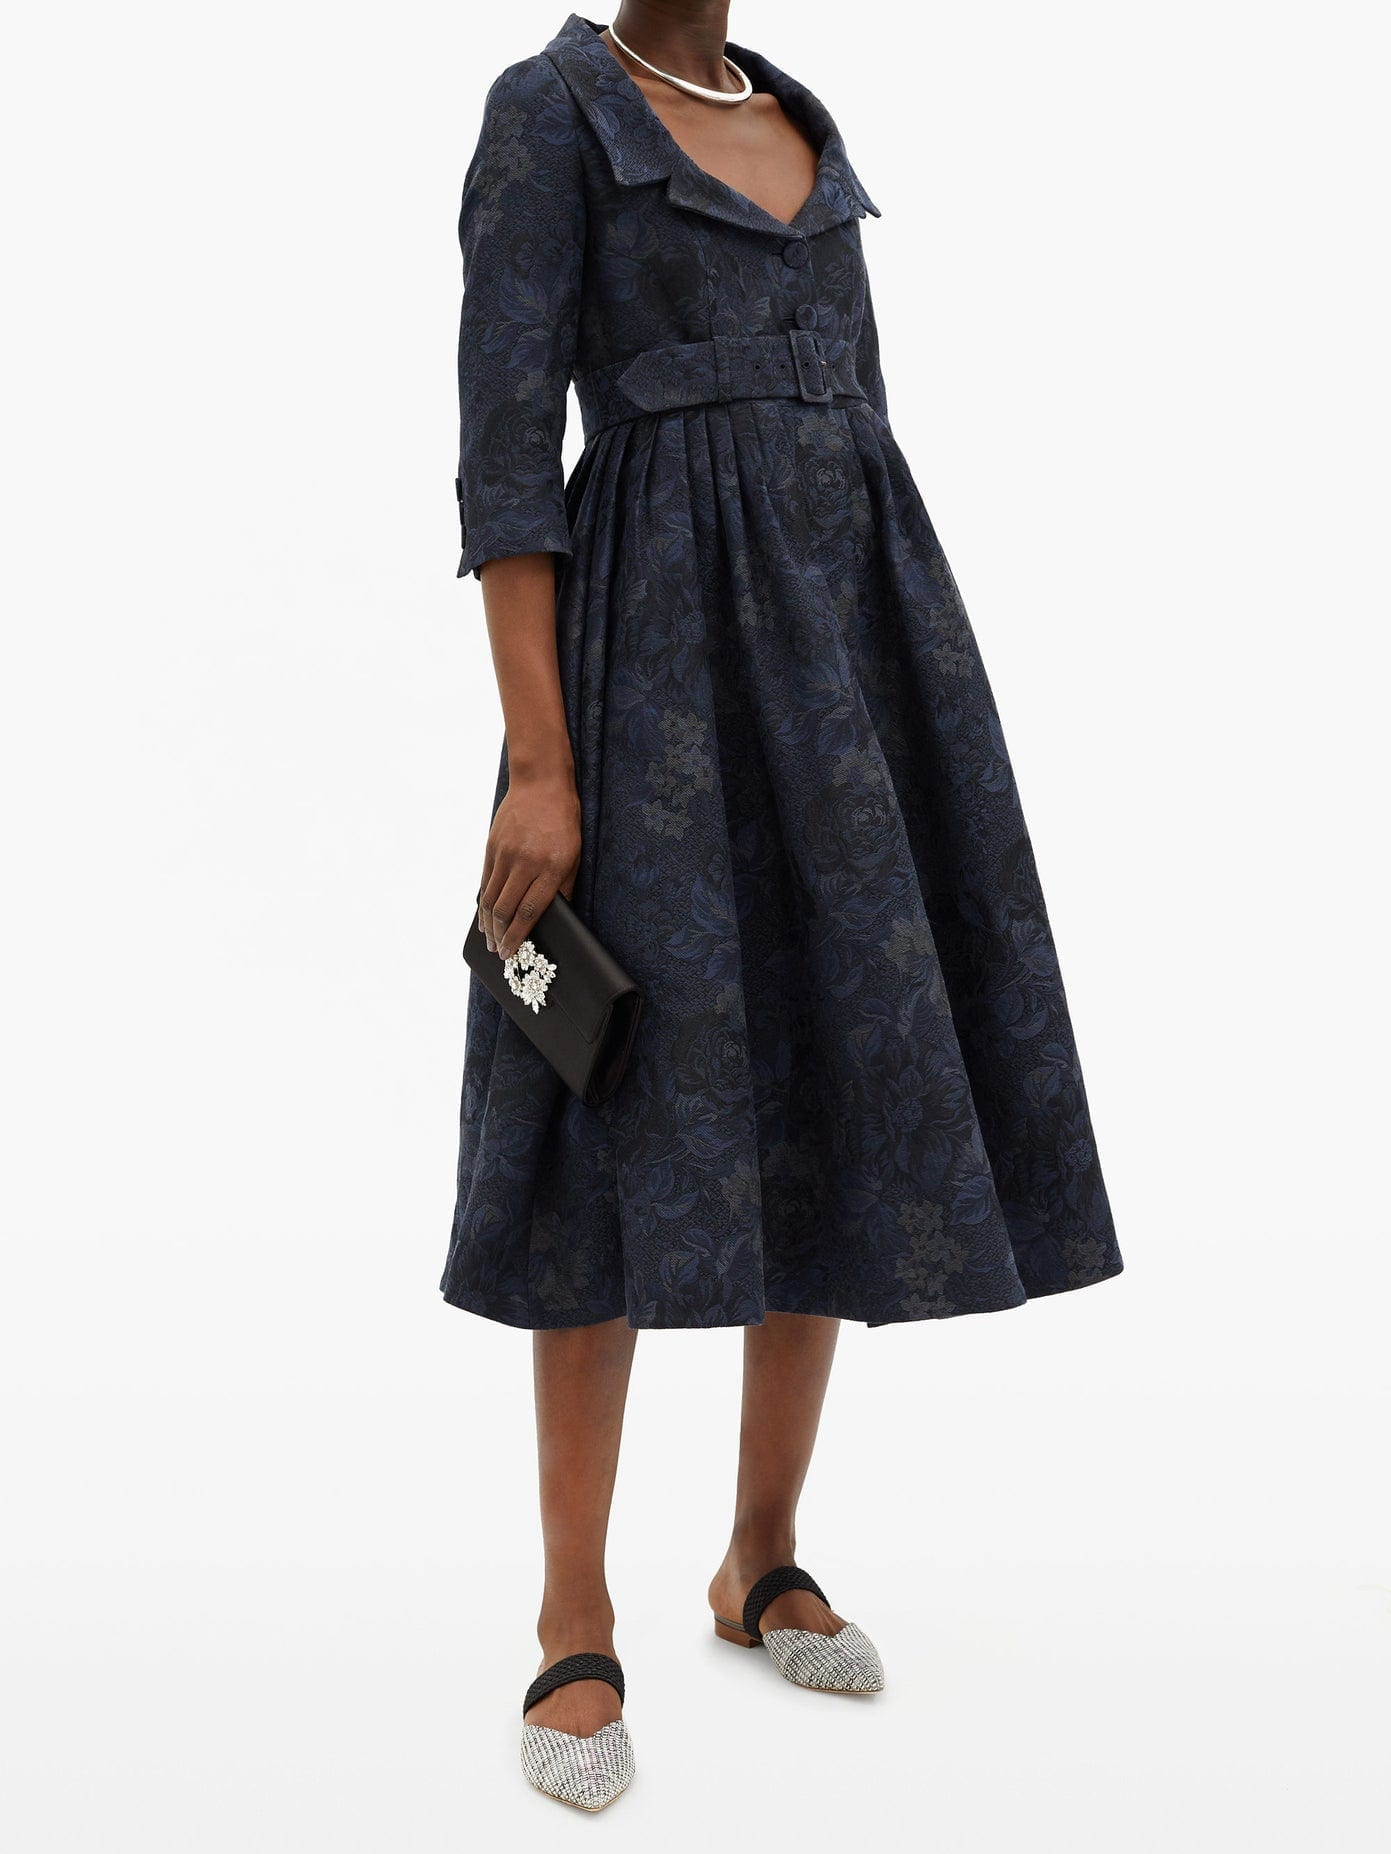 ERDEM Meril Cotton-blend Floral-jacquard Midi Dress